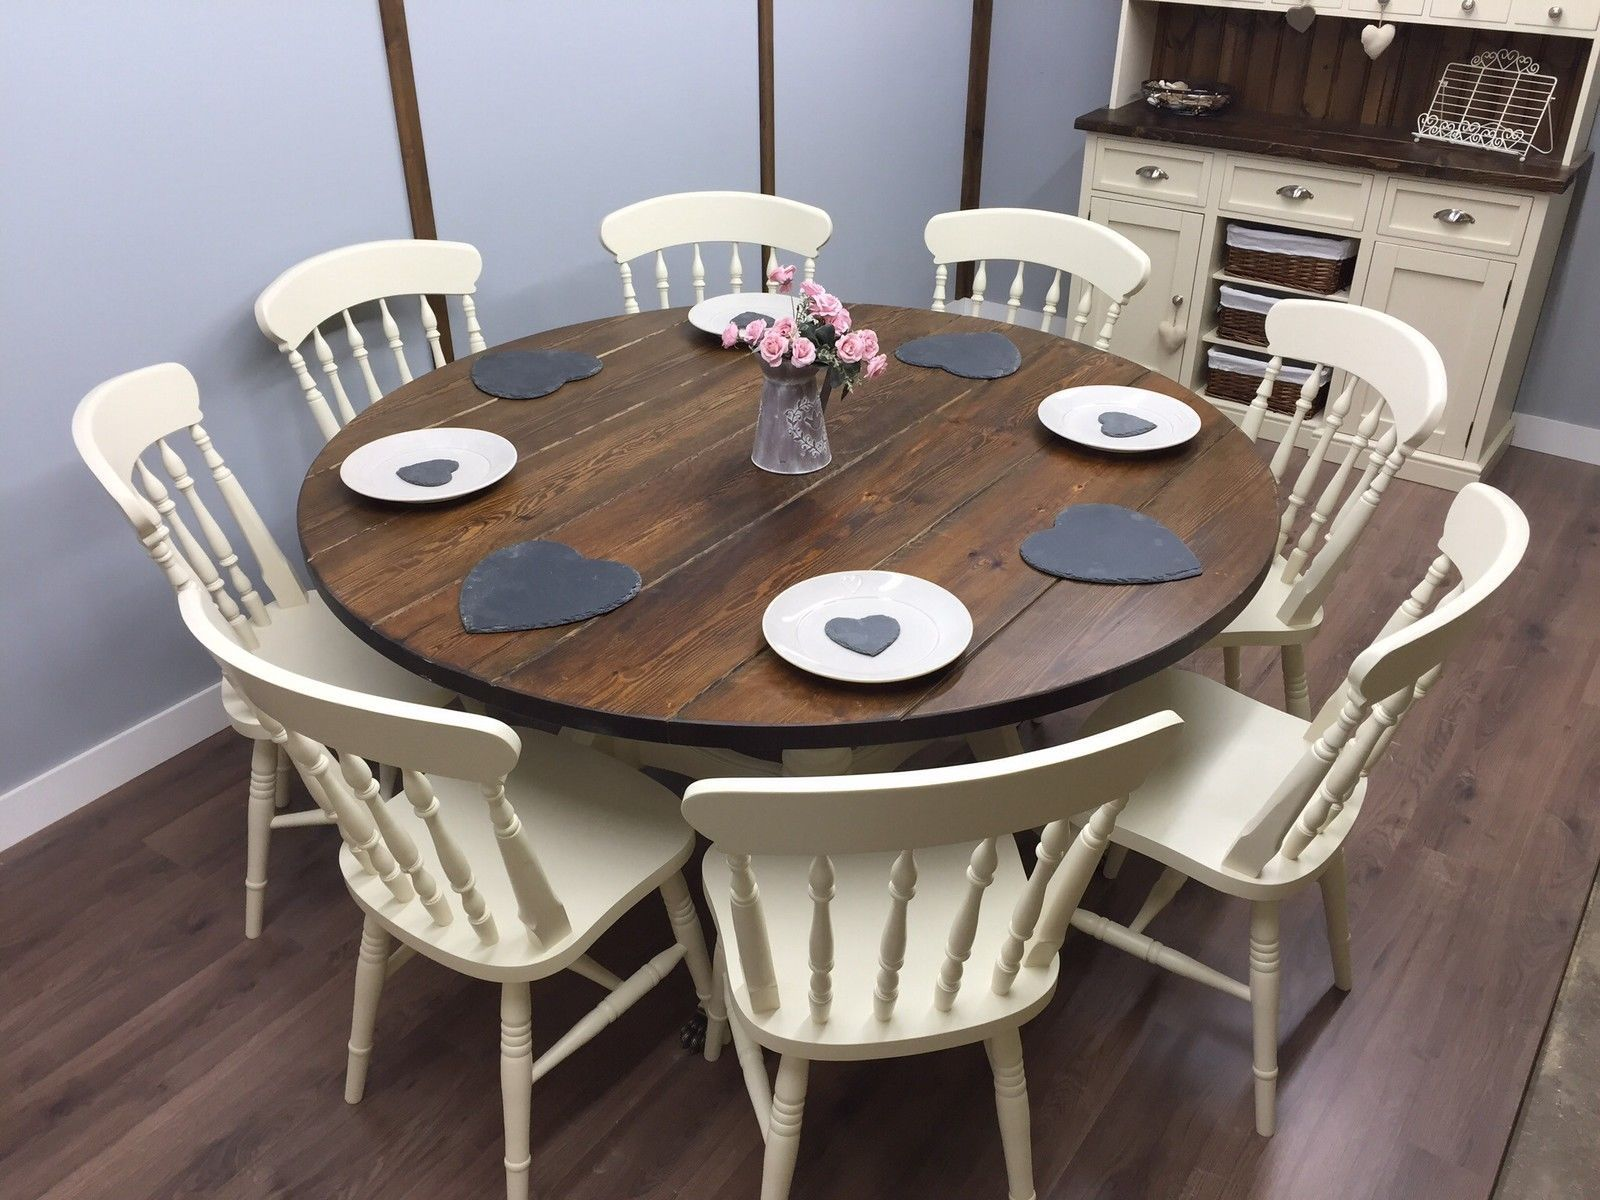 Large Round Farmhouse Table And Chairs 6 8 Seater Shabby Chic